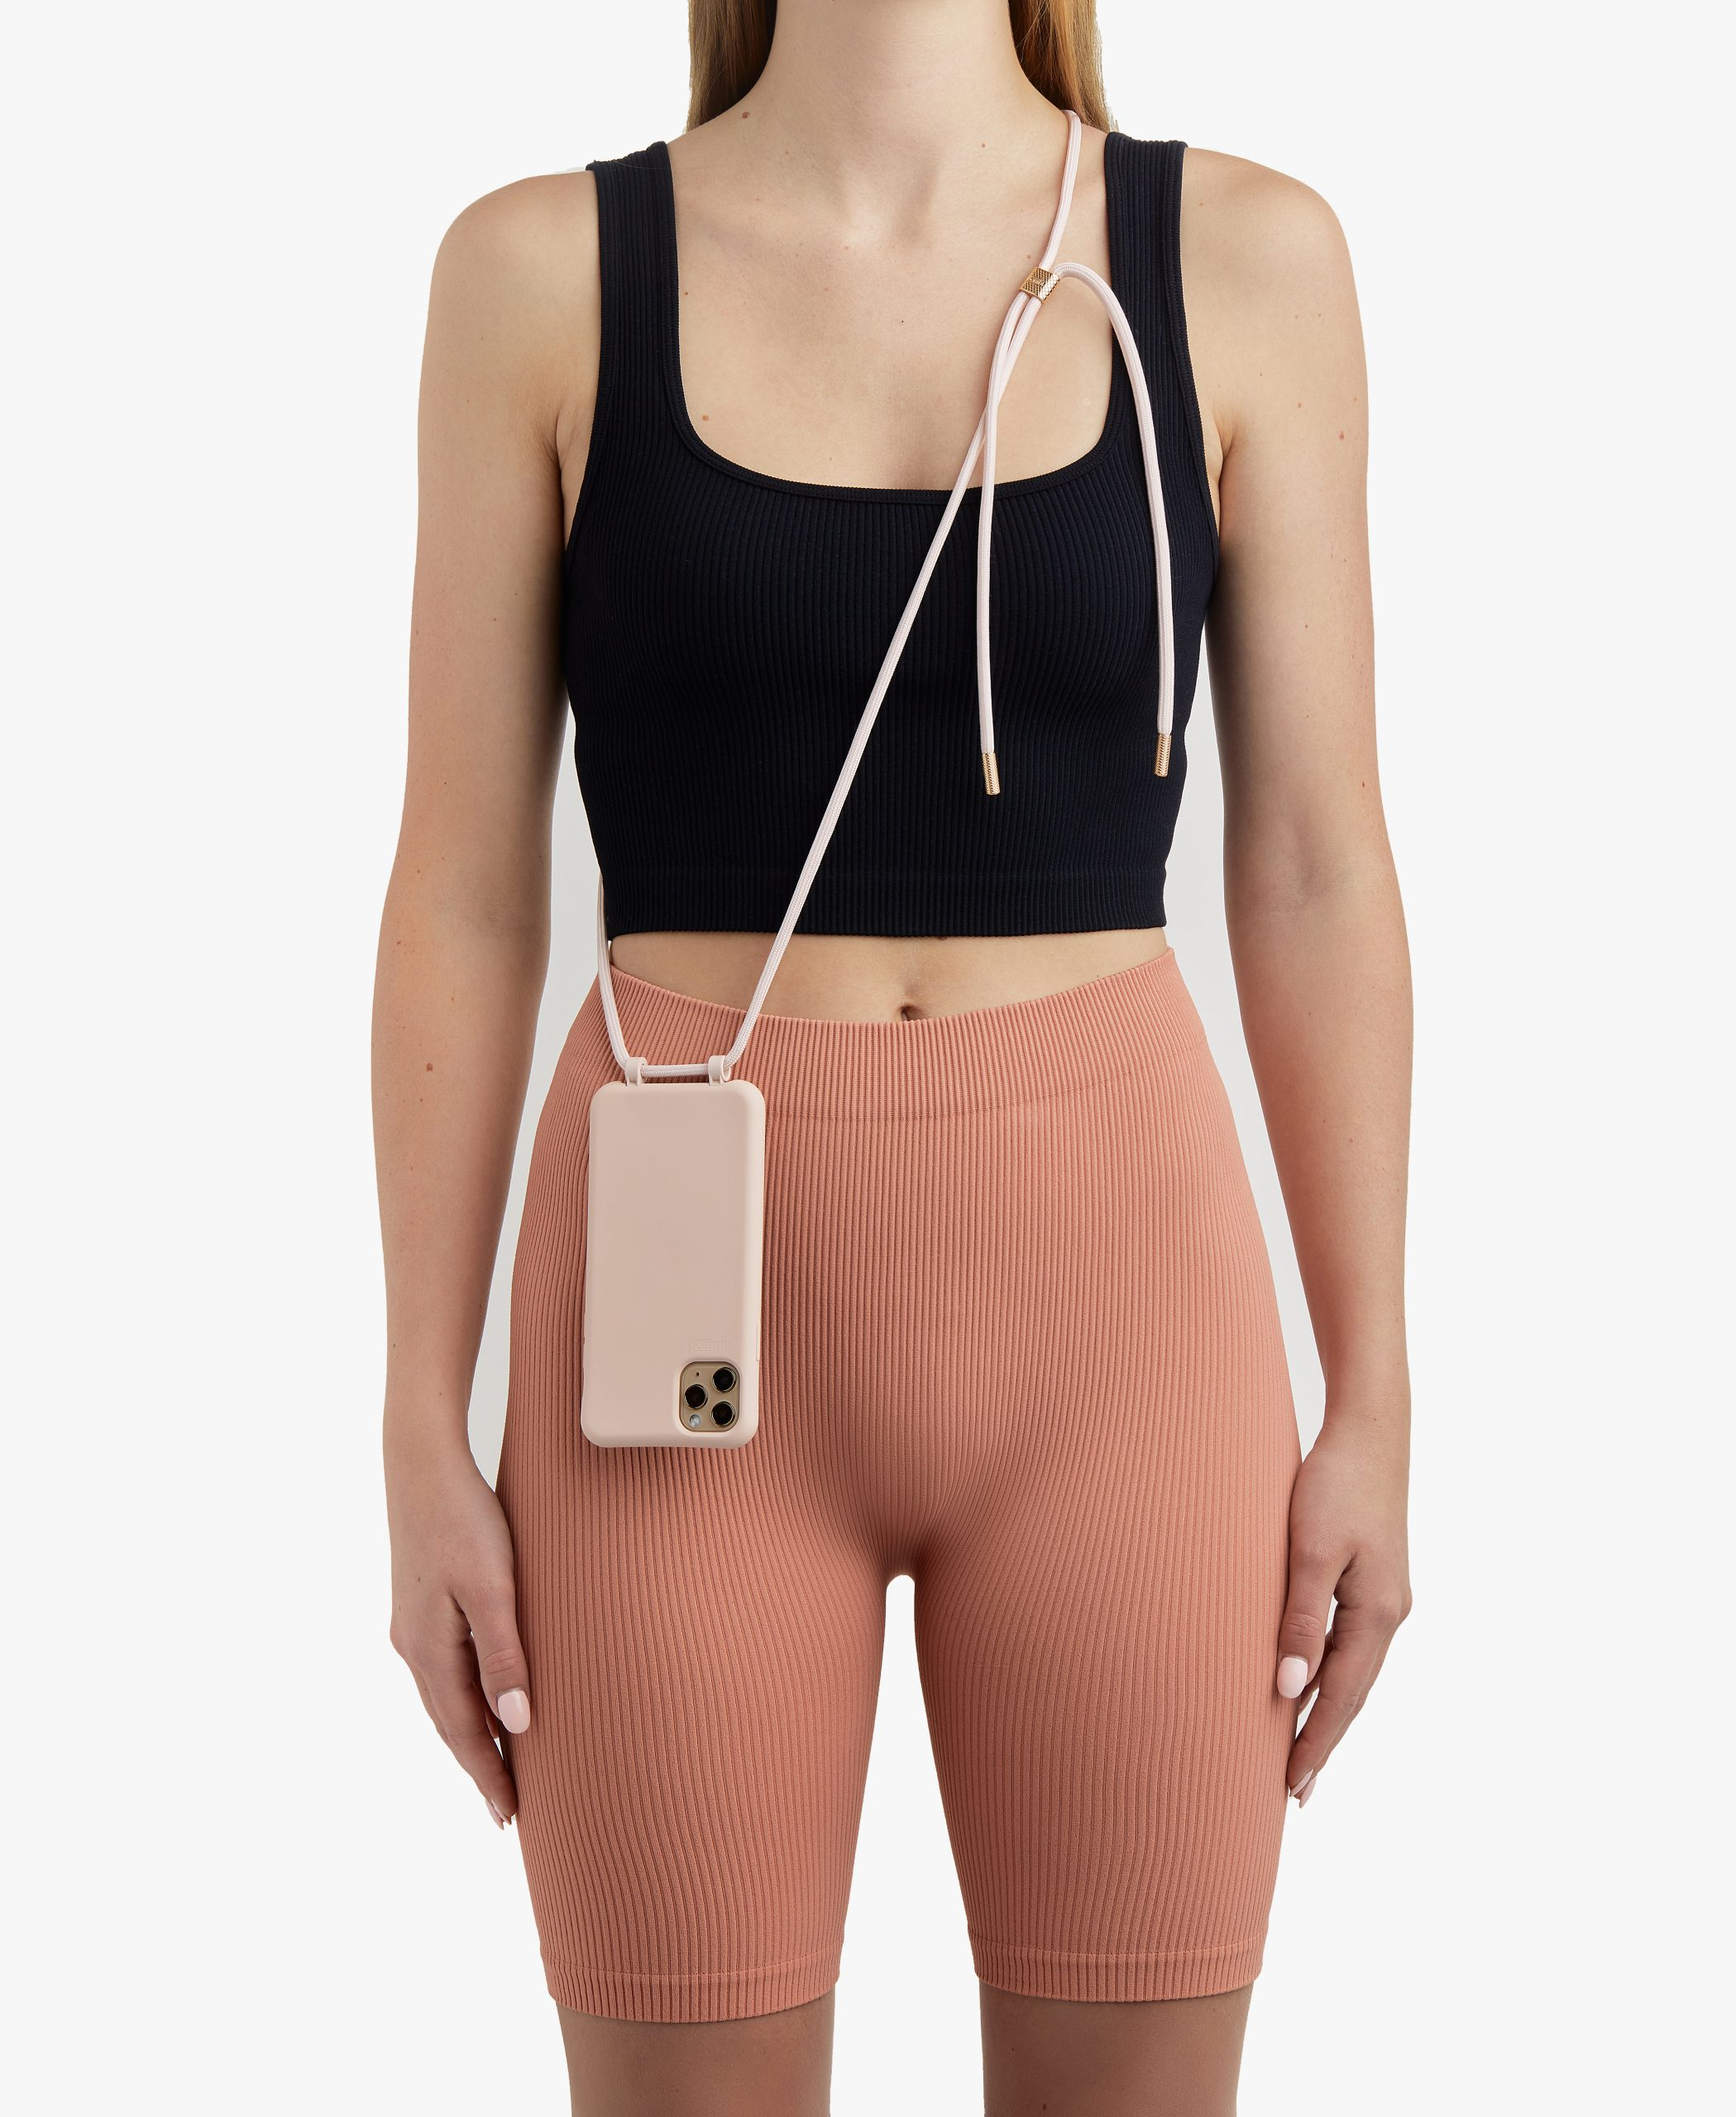 Bonibi-Crossbody-Phone-Case-iPhone-Pink-Dust-Case-Pink-Dust-Cord-Gold-Hardware-Necklace-Lanyard-Lifestyle-Phone-Case-With-Strap-Neck Holder-Card Holder-Tether-Carrier-Functional